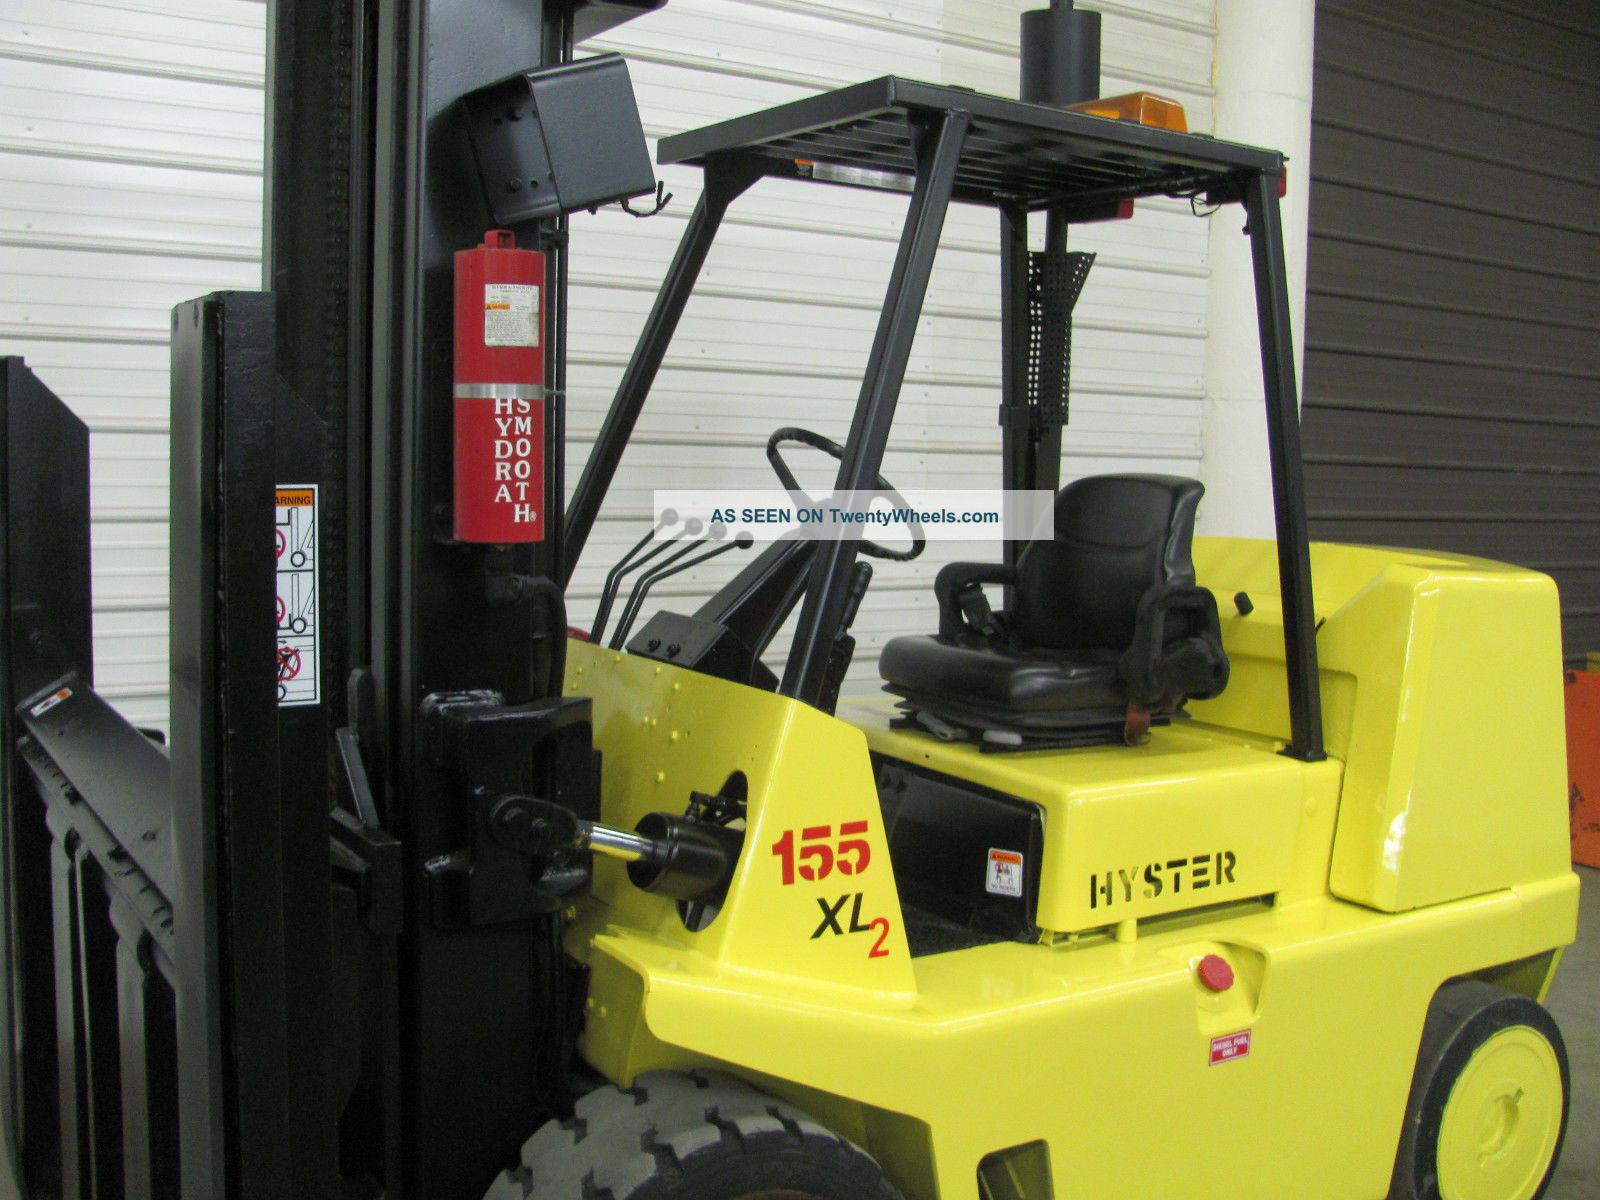 Case 1845c Specs >> Hyster S155xl Cushion Forklift, 15, 000 Lb Two Stage Lift ...